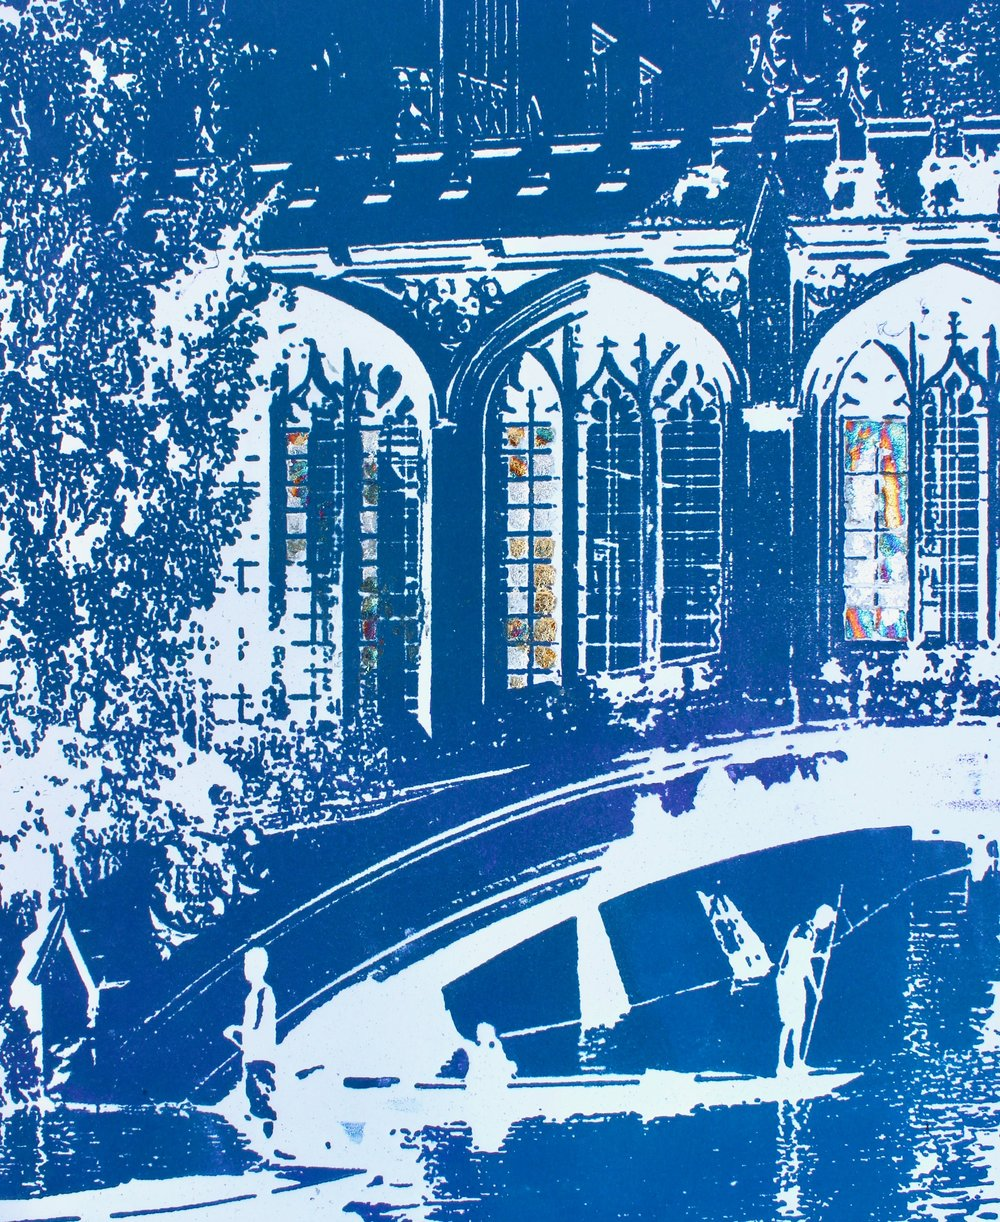 Sighing in Cambridge ed21   solar plate etching   £95